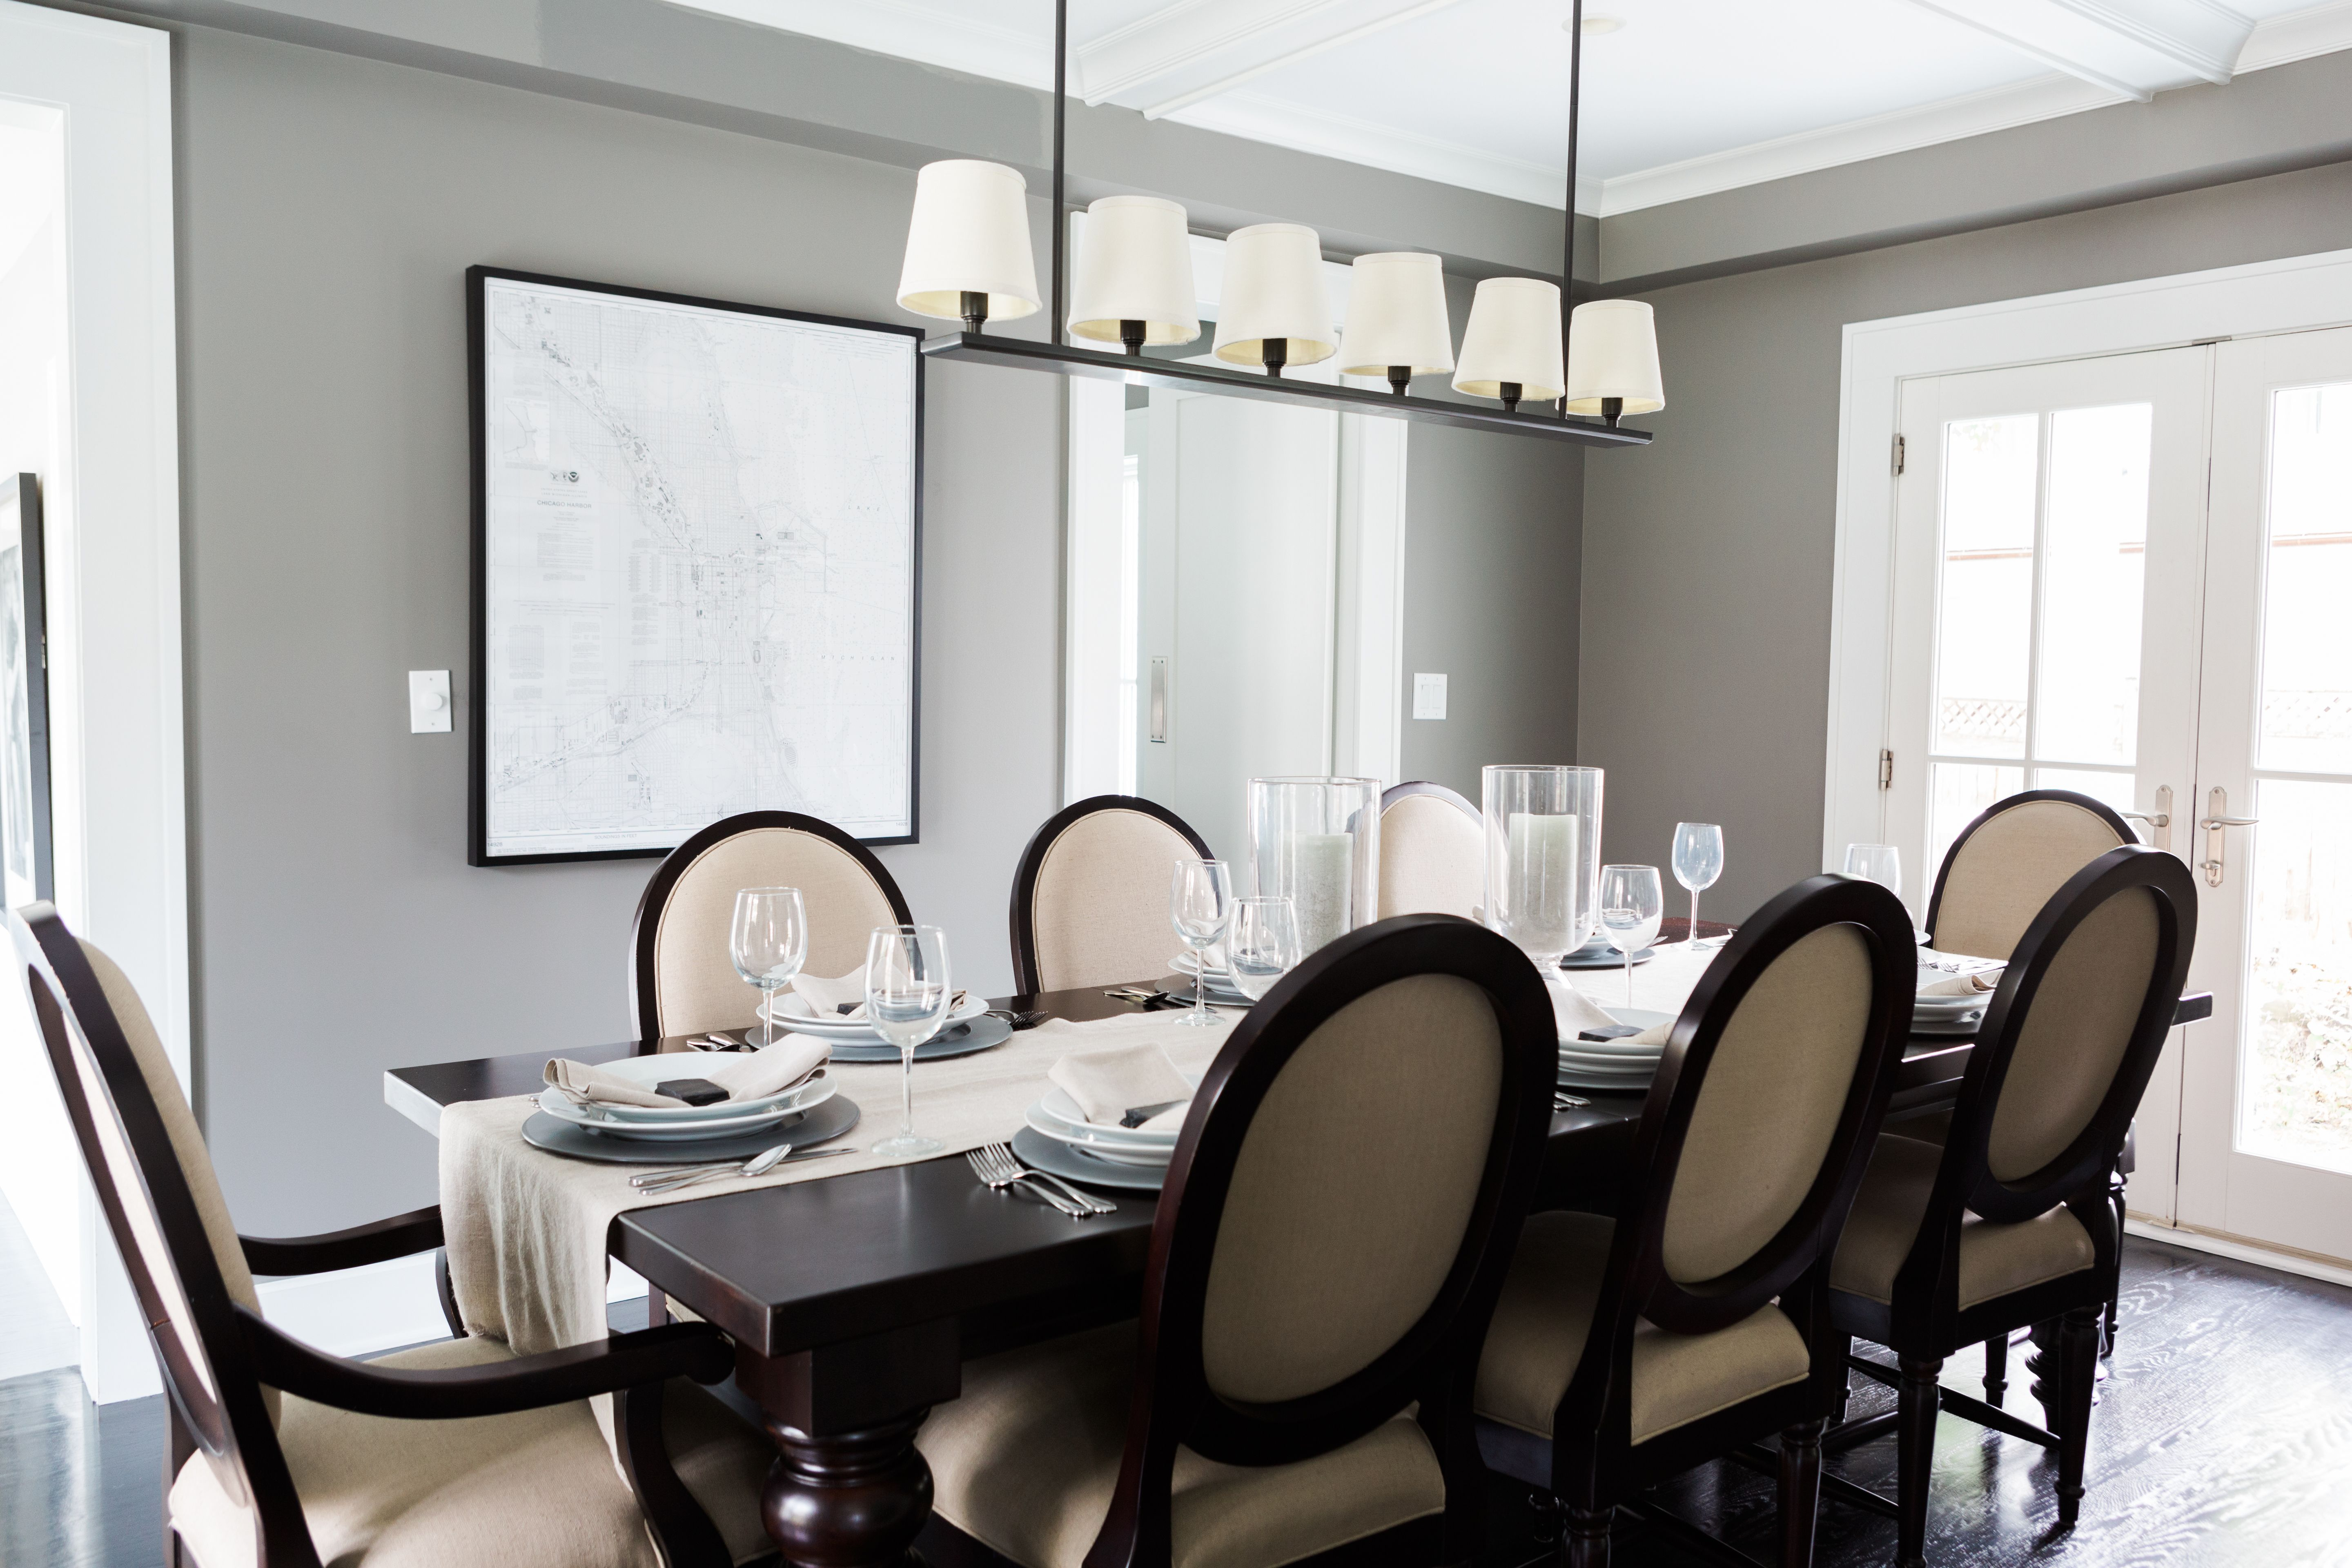 Exceptional Paint Colors That Match This Apartment Therapy Photo: SW 6258 Tricorn  Black, SW 6990 Caviar, SW 6083 Sable, SW 7669 Summit Gray, SW 7656  Rhinestone